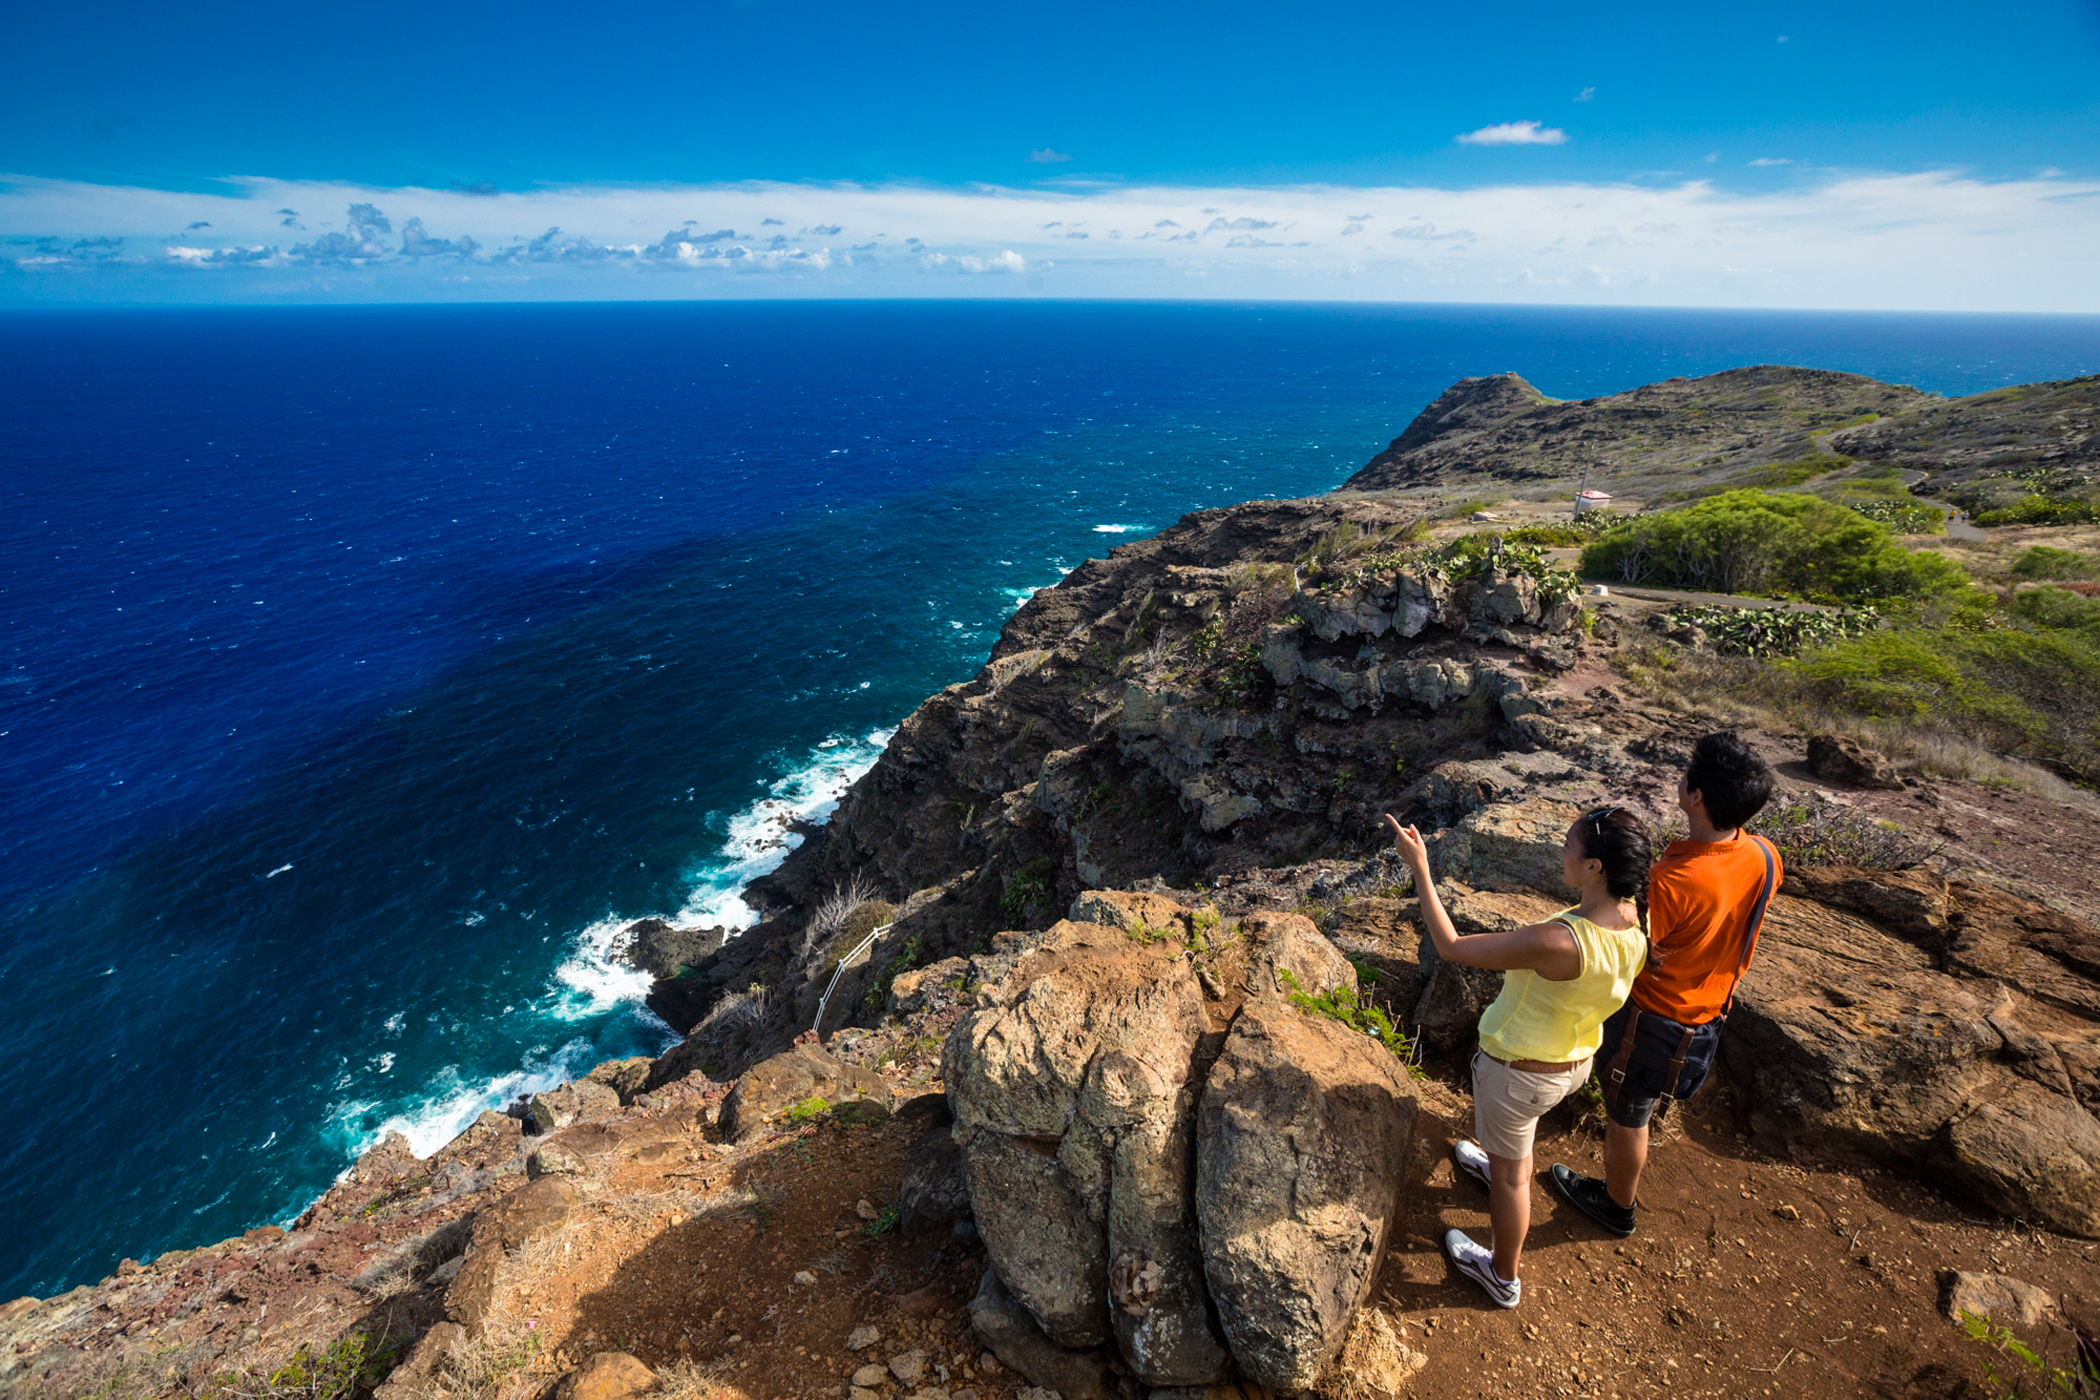 Couple look across the Pacific from Makapuu Trail